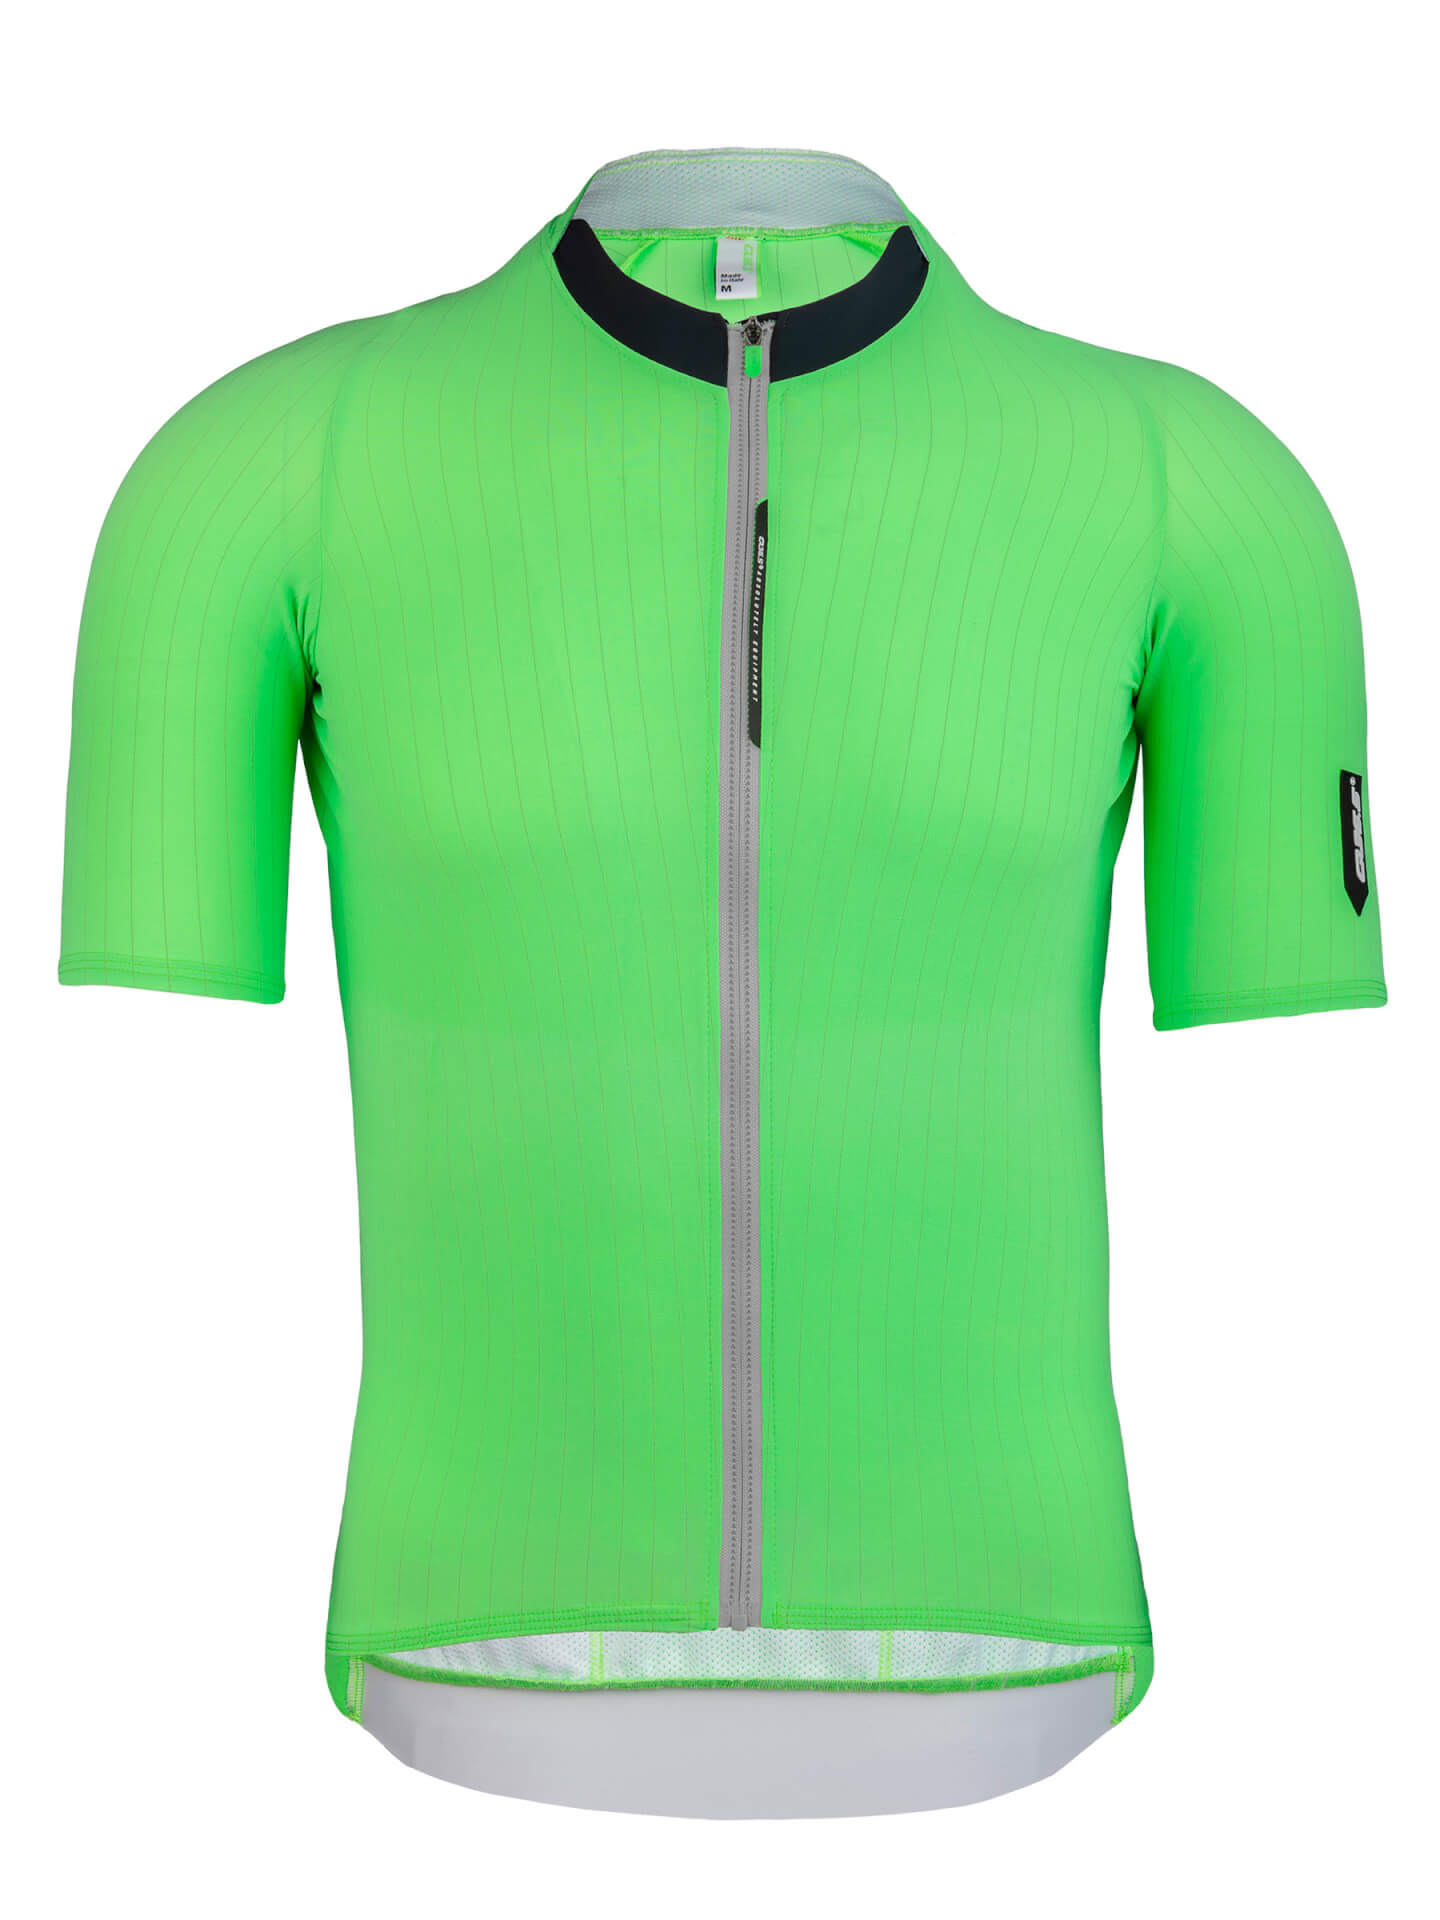 Mens cycling jersey short sleeve Seta green Q36.5